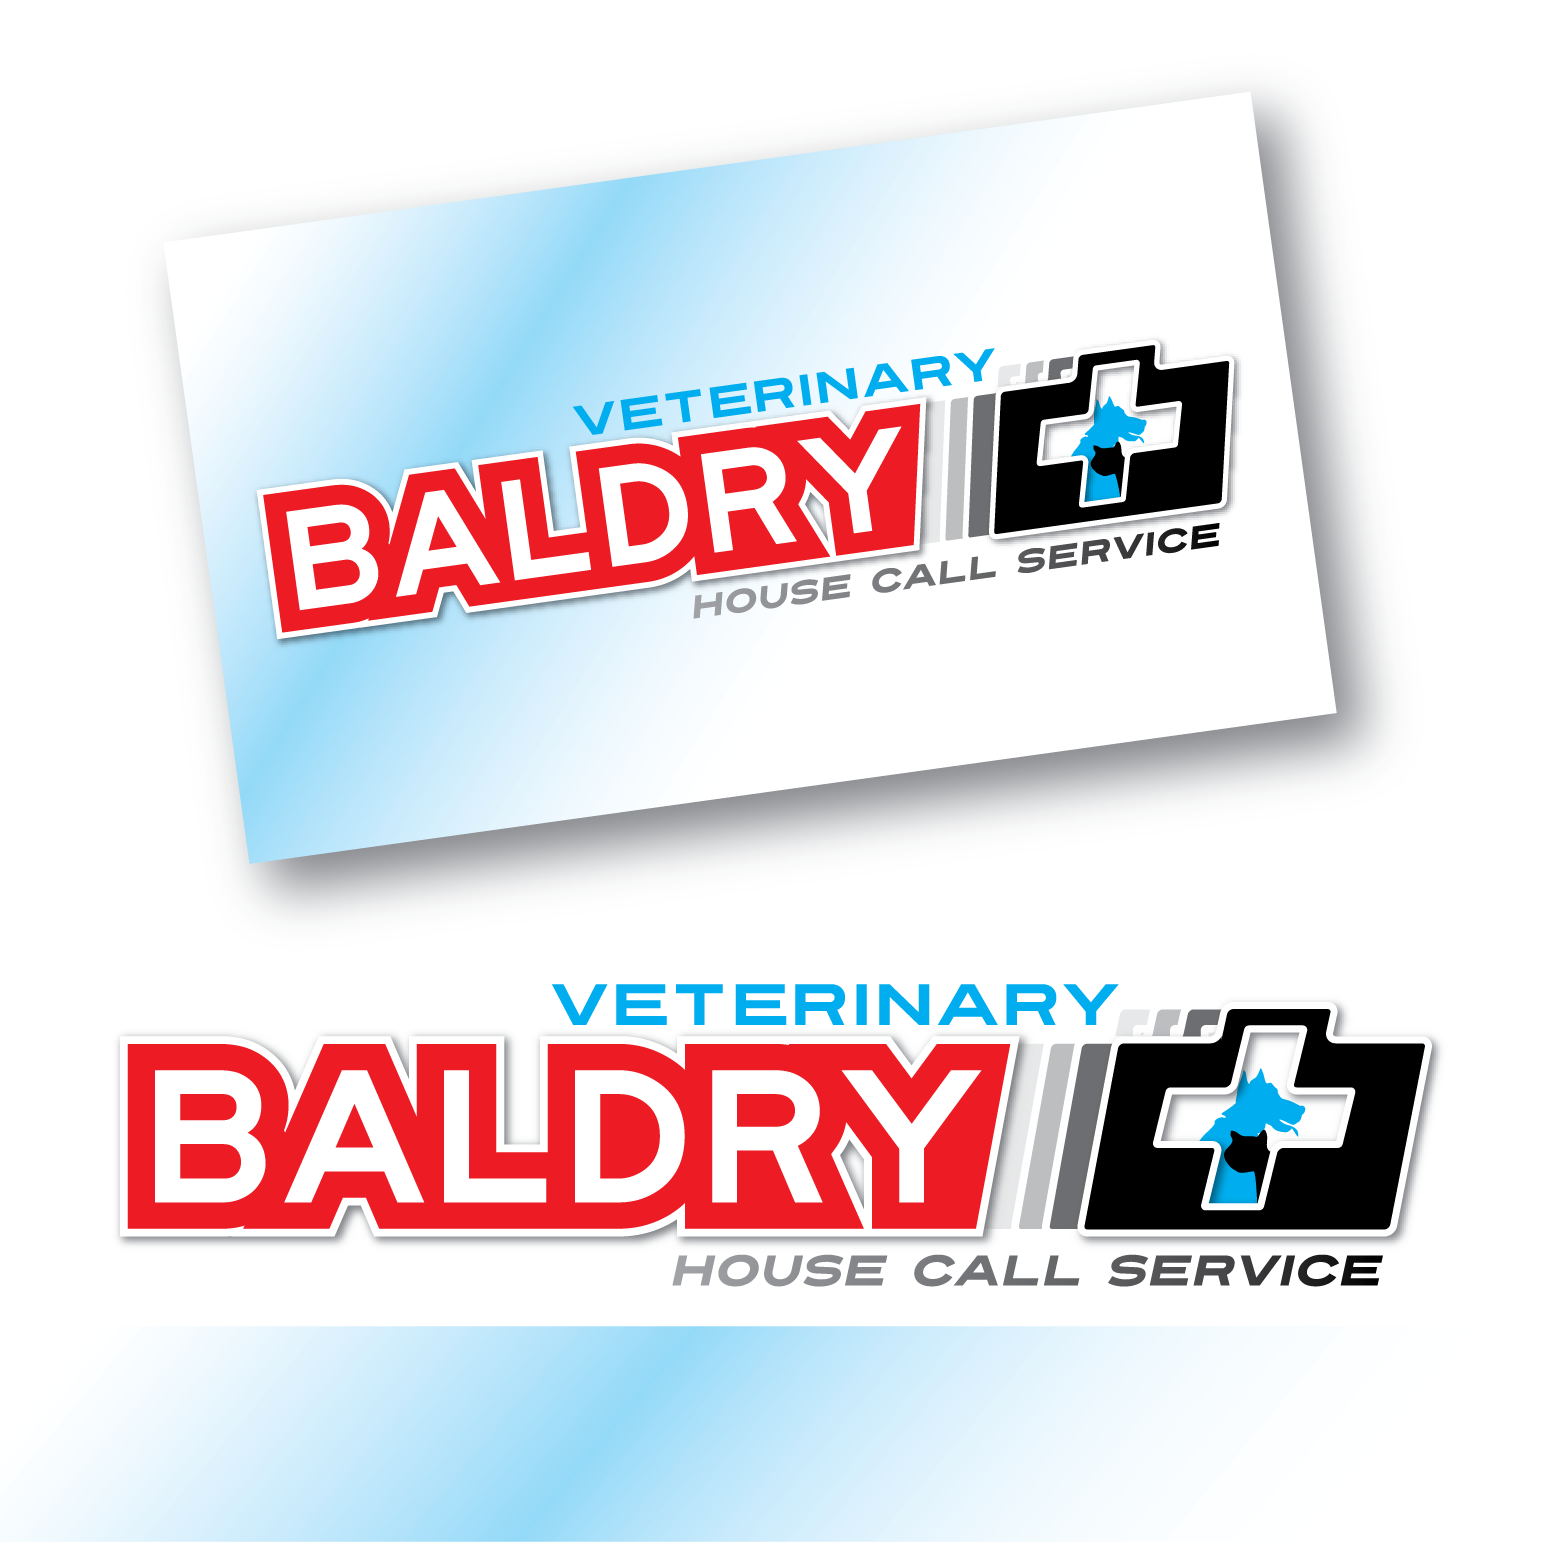 Logo Design by Teresa Abney - Entry No. 96 in the Logo Design Contest Captivating Logo Design for Baldry Veterinary House Call Service.